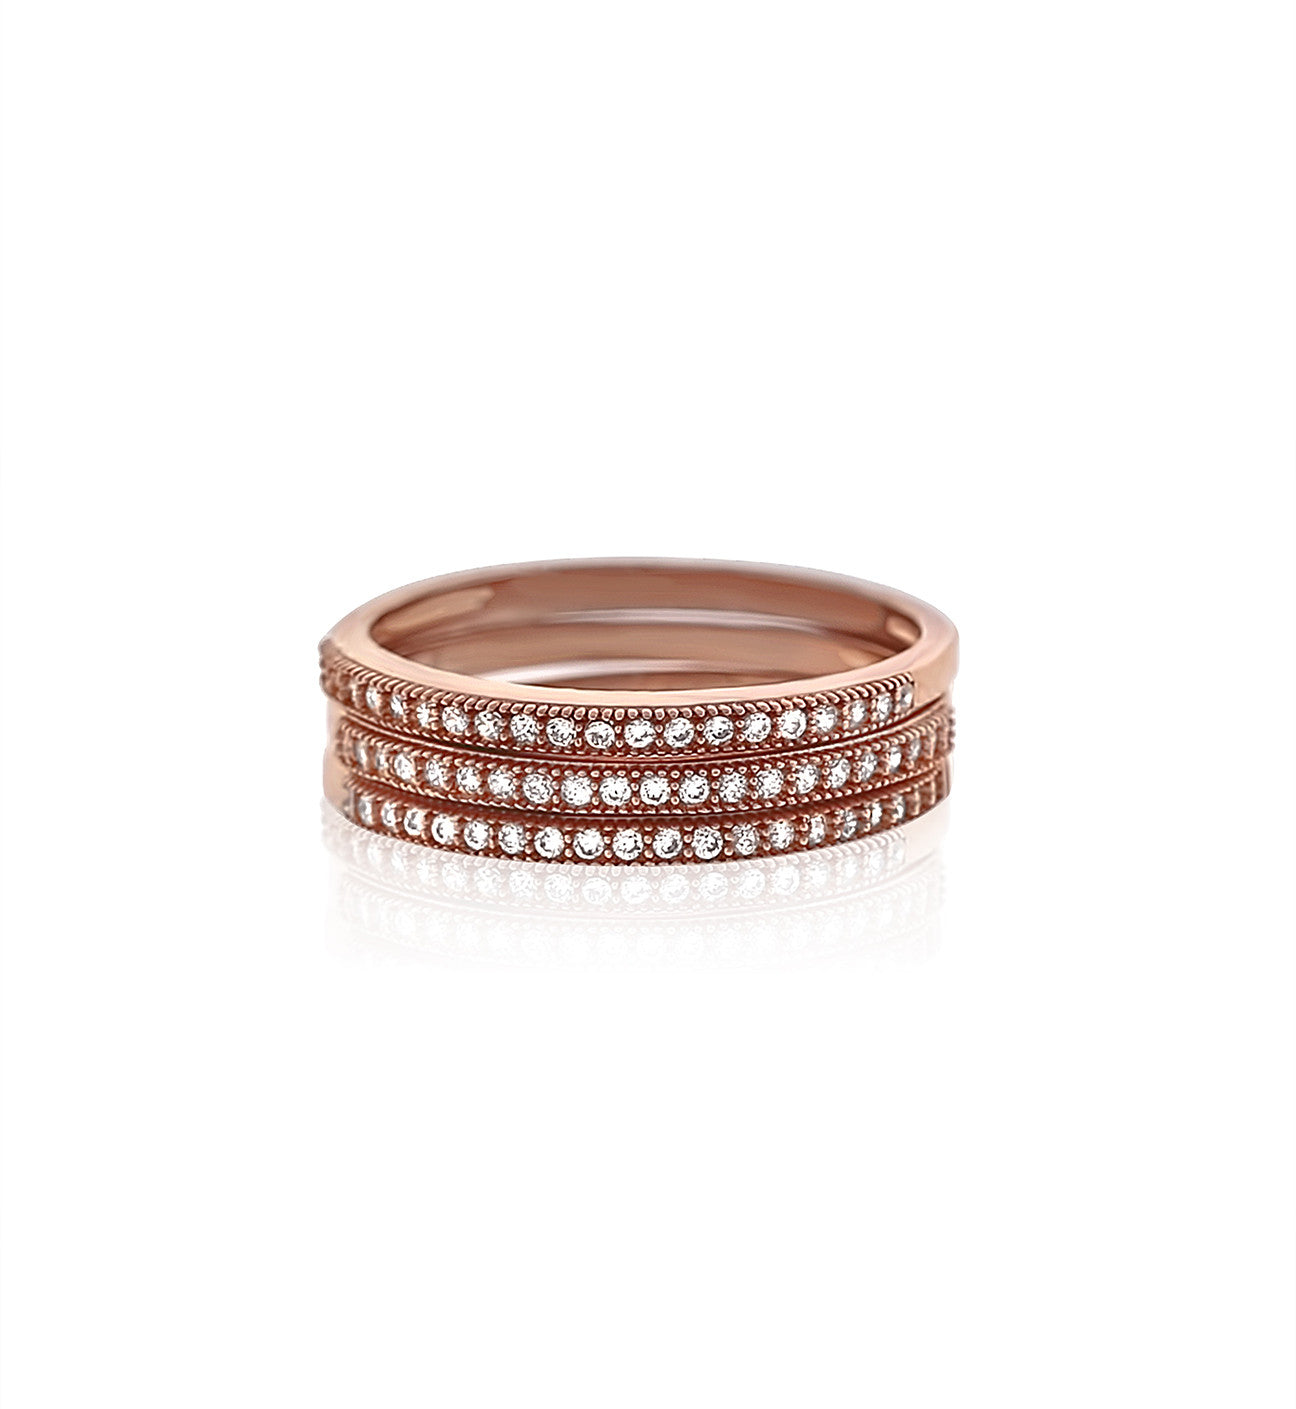 Micropavé rose gold plated silver cz stackable rings - Schandra